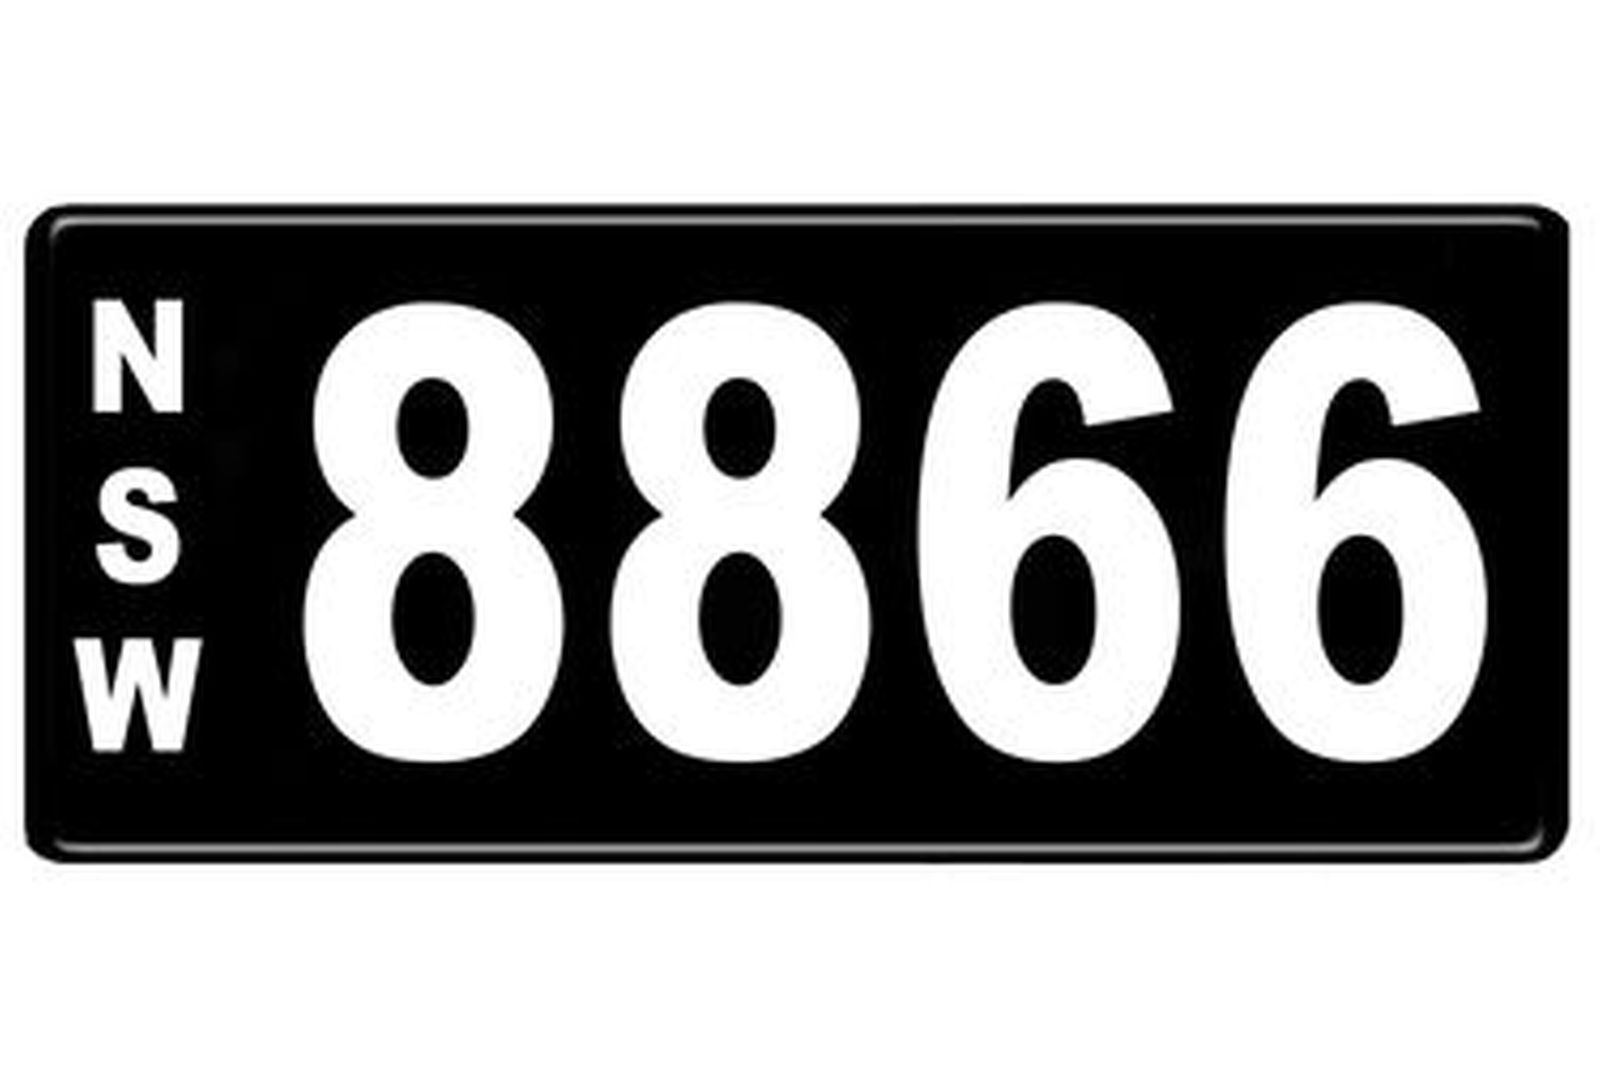 Number Plates - NSW Numerical Number Plates '8866'